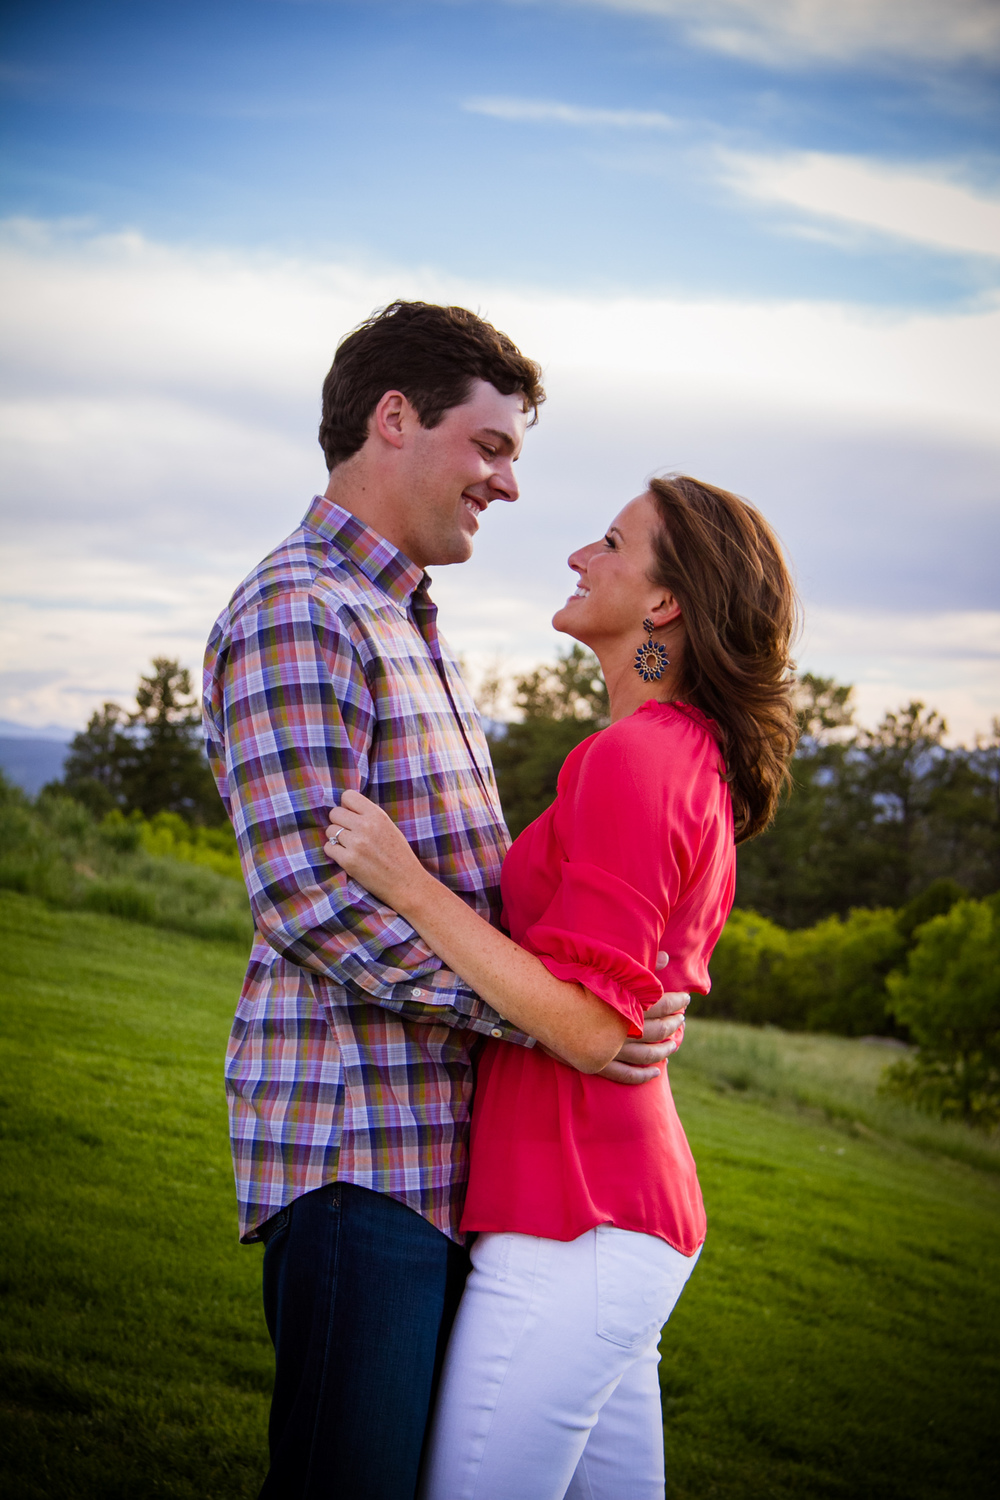 Castle_Pines_Colorado'_Engagement_Photos_010.JPG